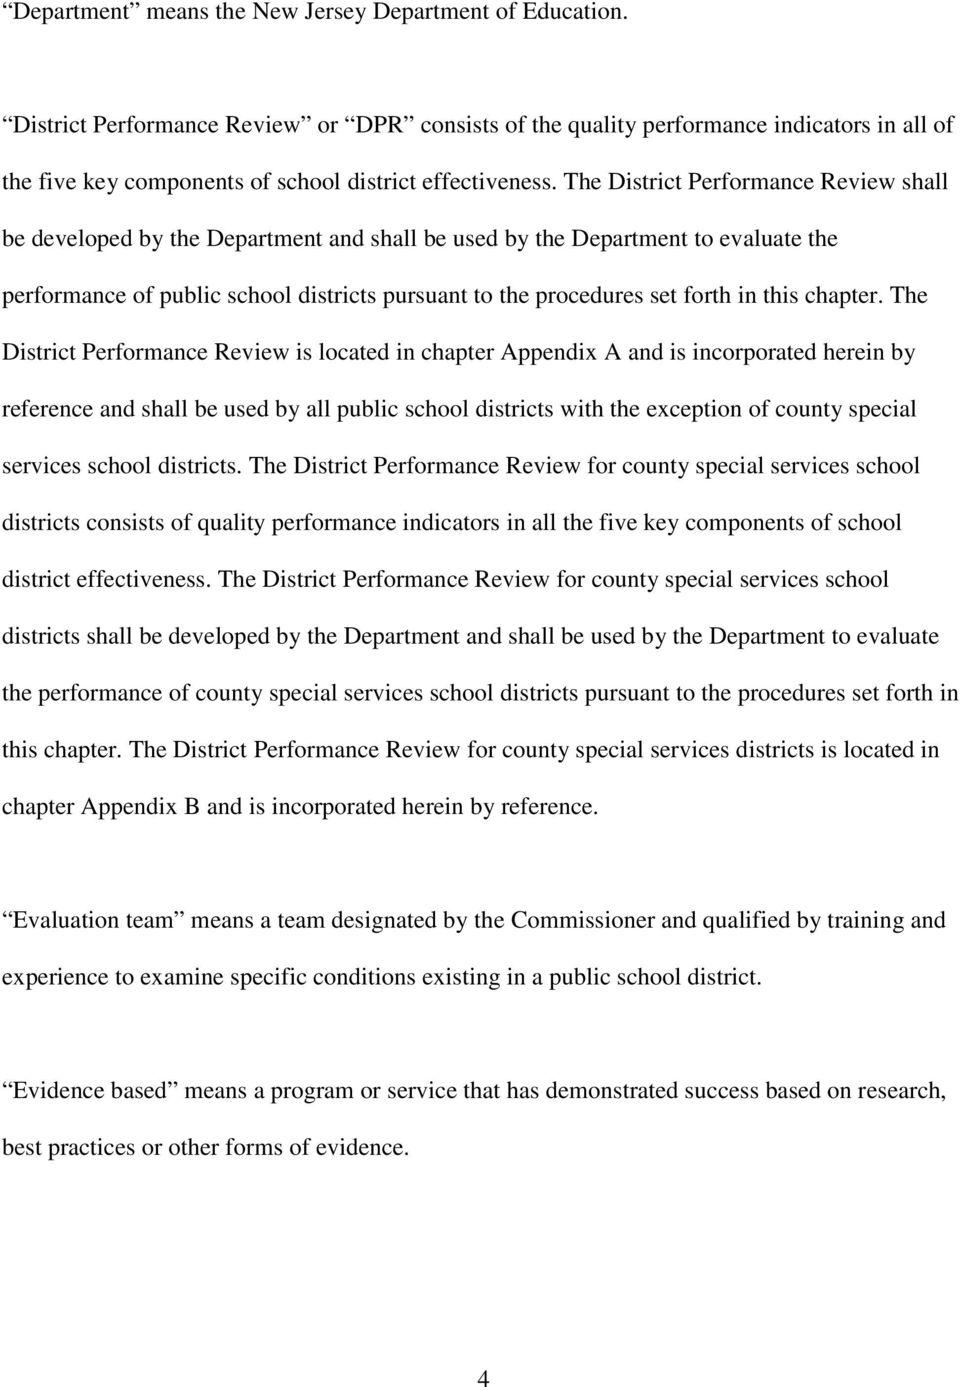 The District Performance Review shall be developed by the Department and shall be used by the Department to evaluate the performance of public school districts pursuant to the procedures set forth in